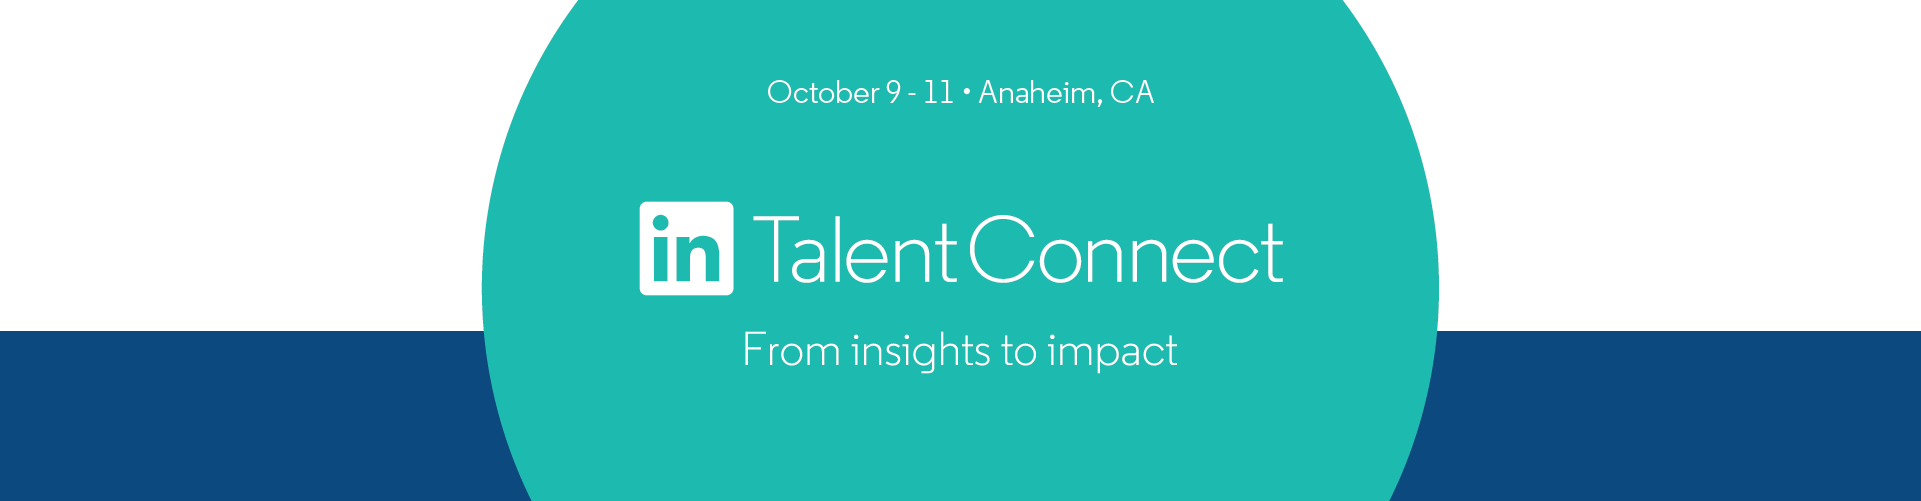 TabentConnect | October 9-11 Anaheim, Ca.